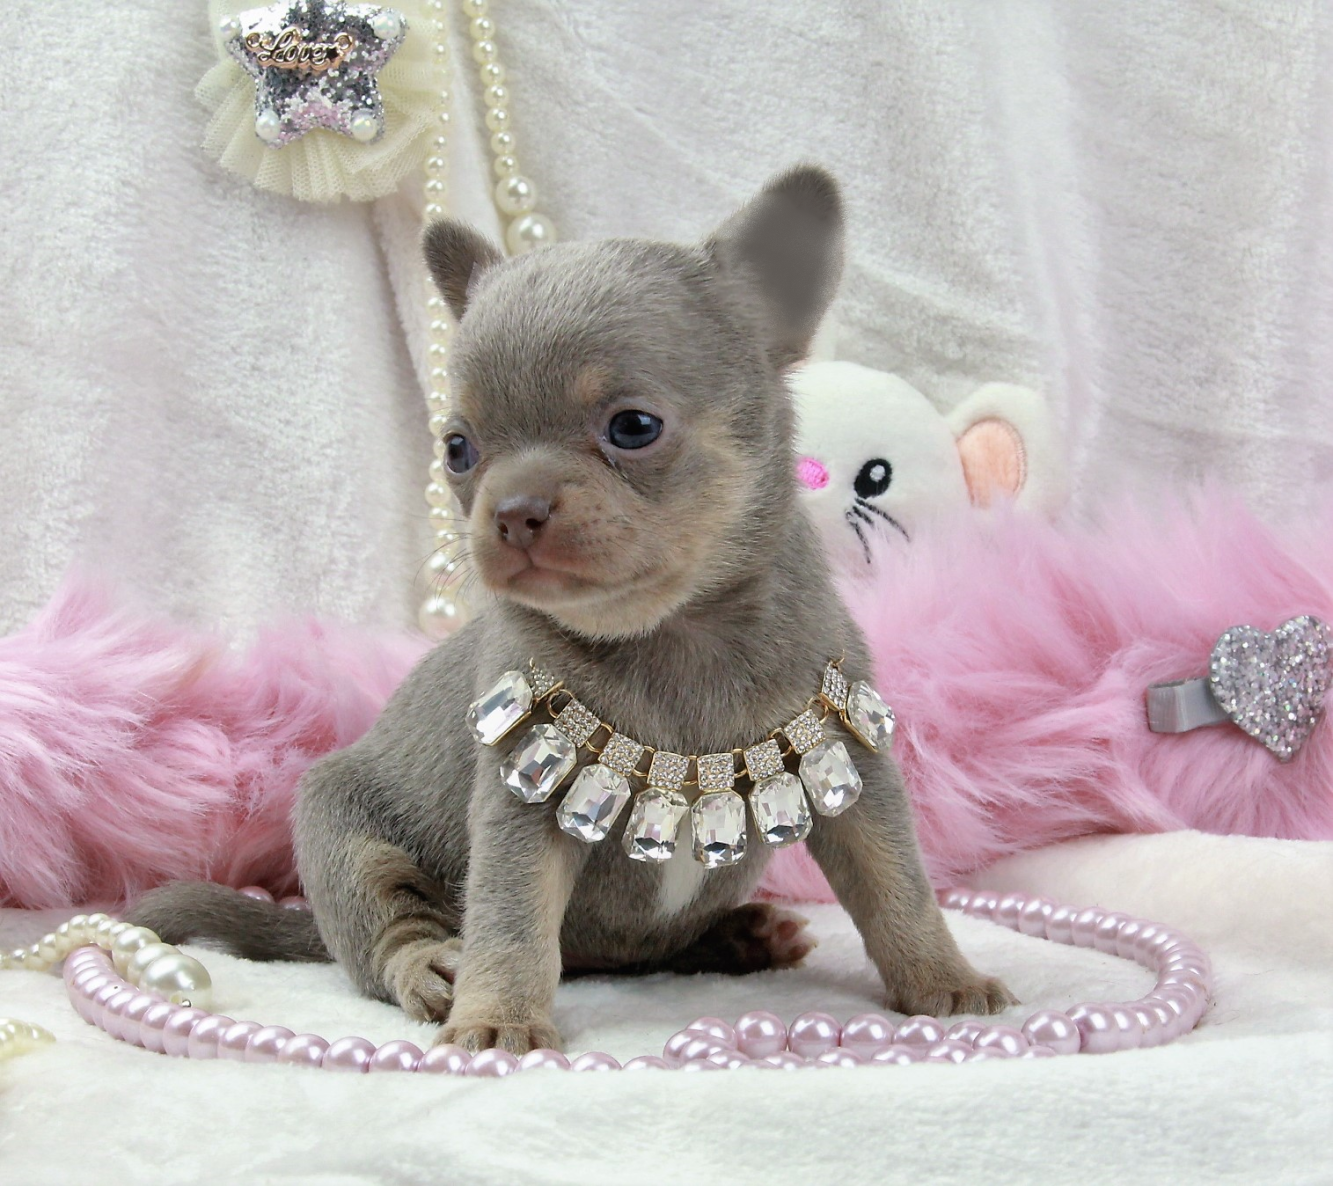 OBSESSION, femelle Chihuahua poil court lavande